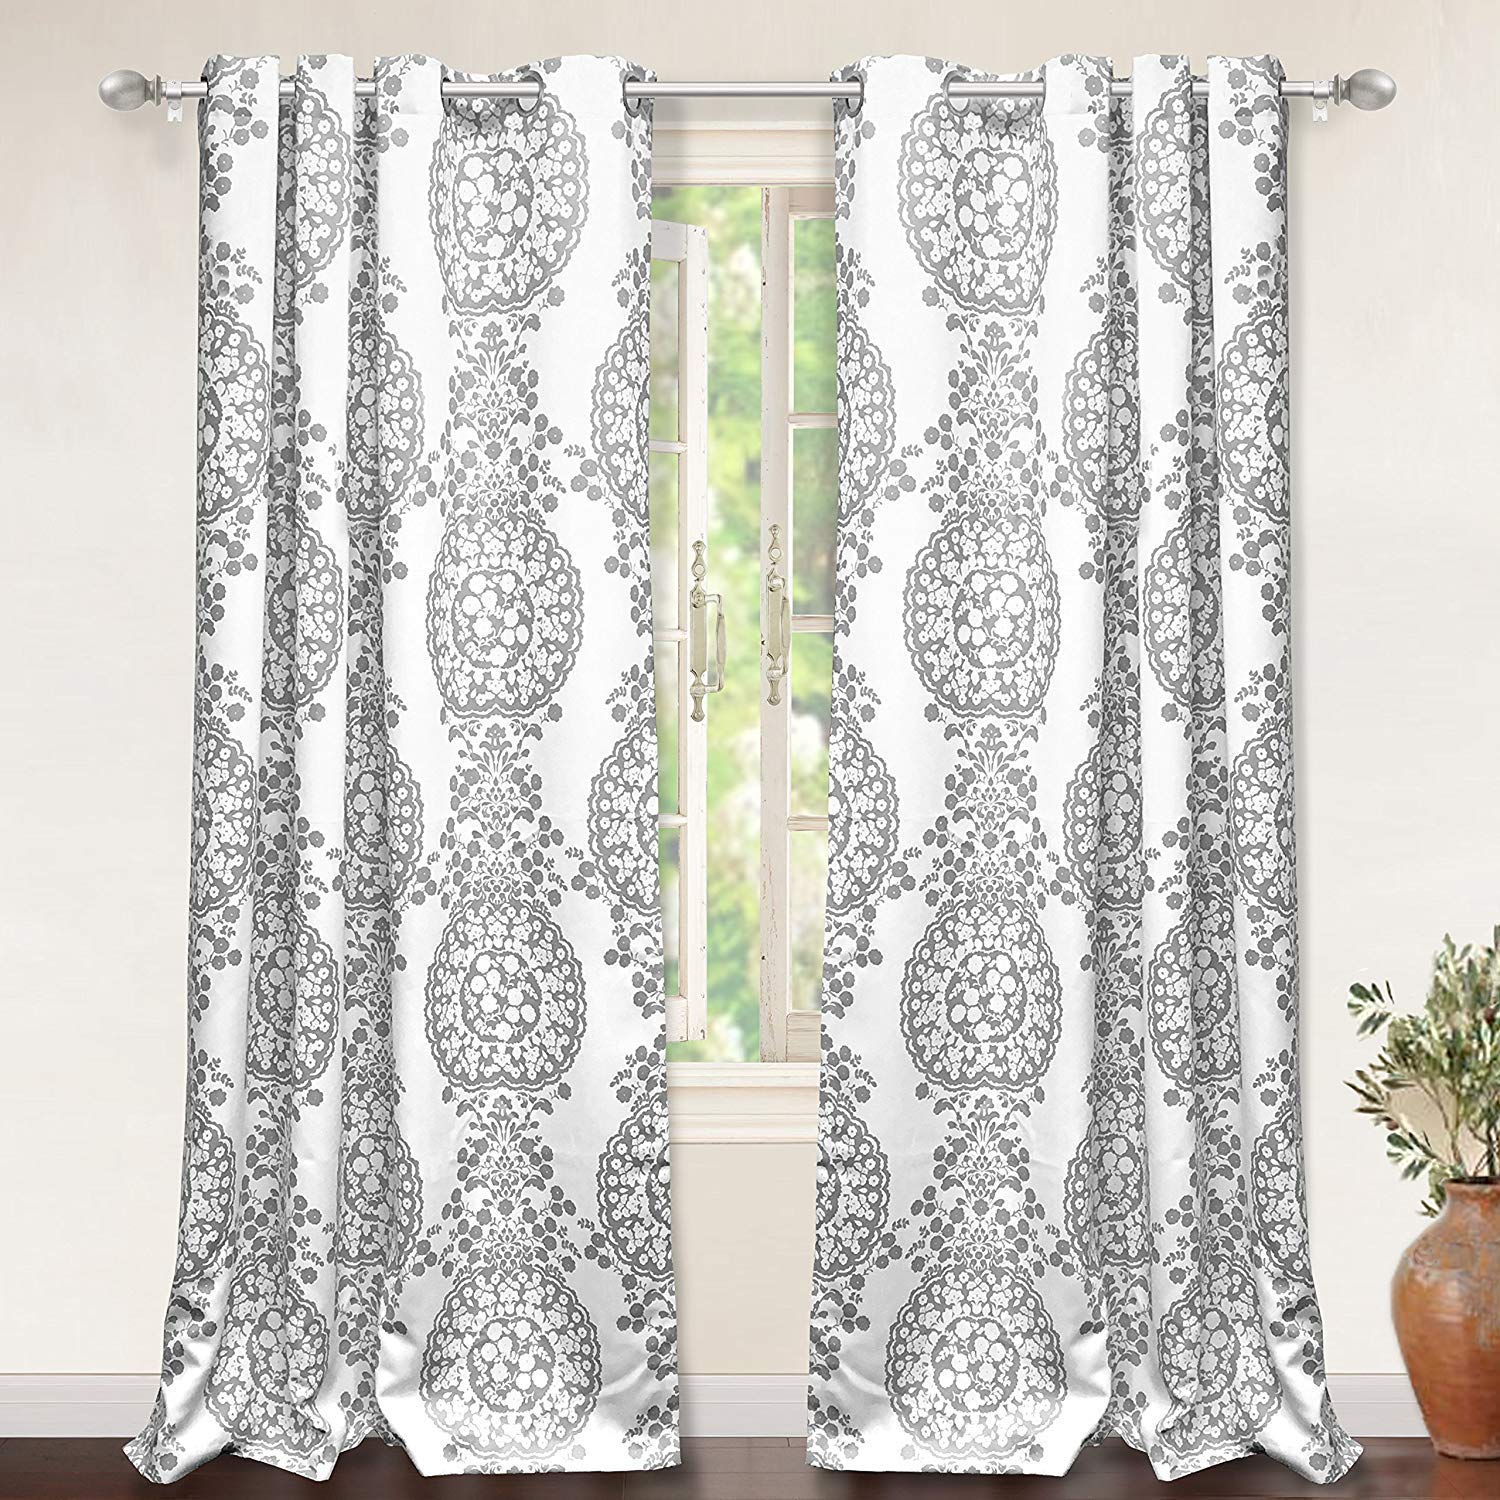 DriftAway Samantha Thermal Room Darkening Grommet Unlined Window Curtains Floral Damask Medallion Pattern 2 Panels Each 52 Inch by 84 Inch Gray by DriftAway